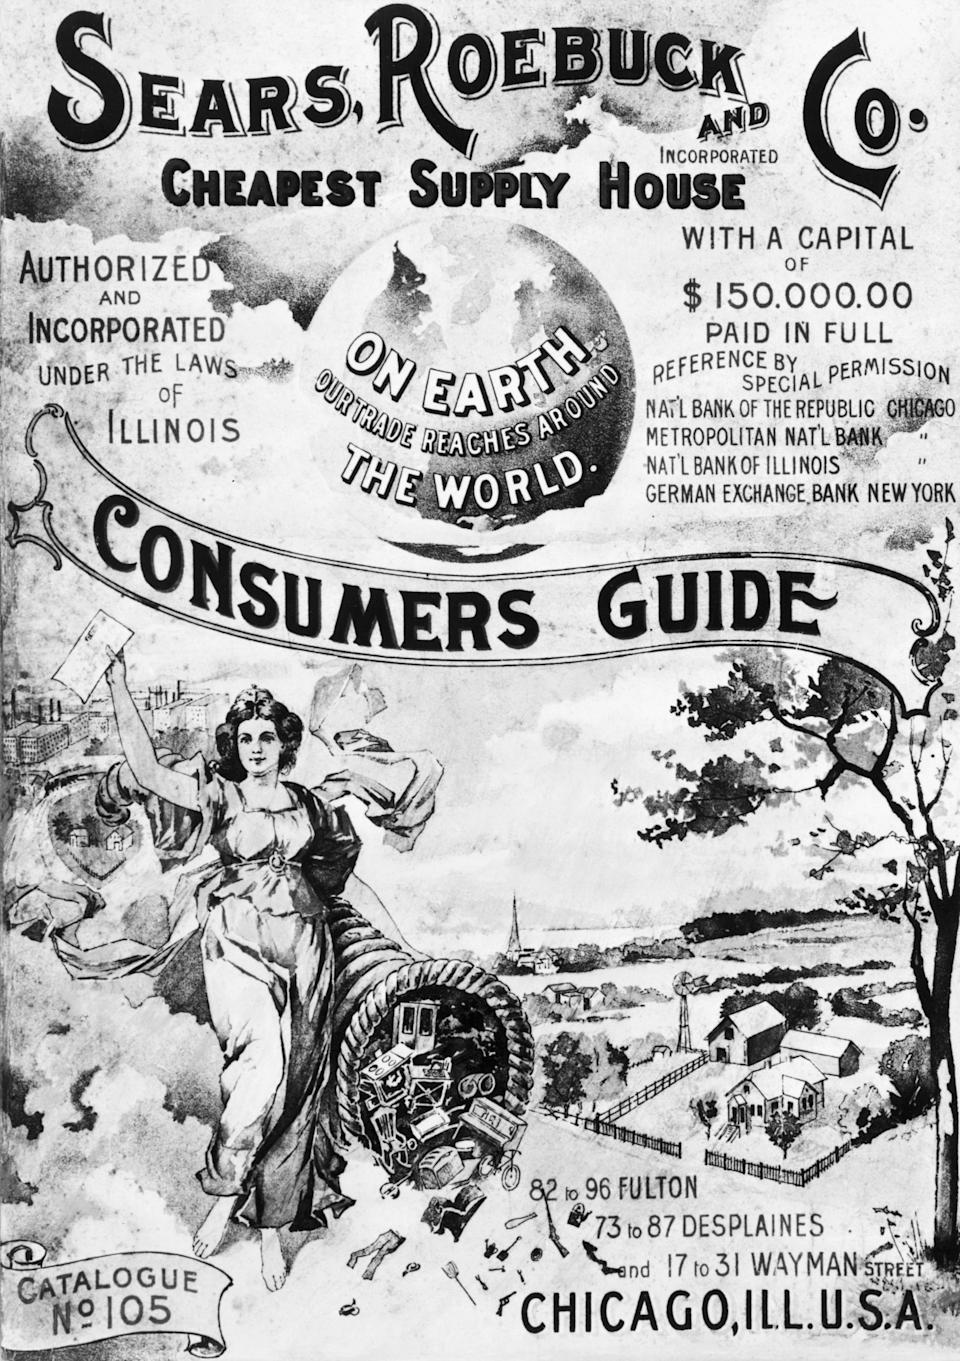 Cover of a Sears Roebuck & Co. Consumer's Guide, Fall 1897.